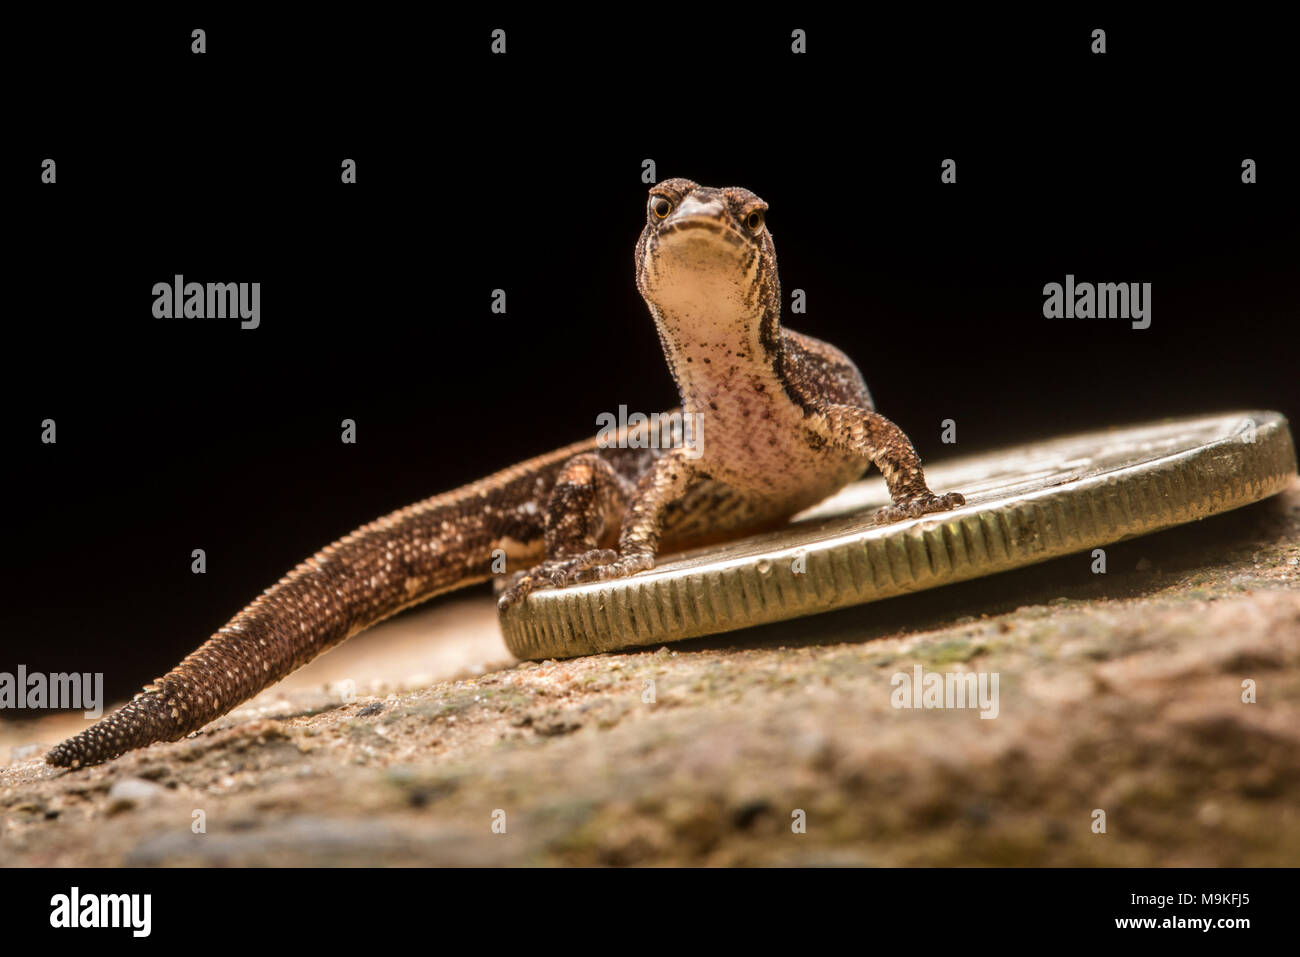 This tiny gecko species (Psuedogonatodes sp.) is among the smallest reptile species and is dwarfed by a small coin. Stock Photo